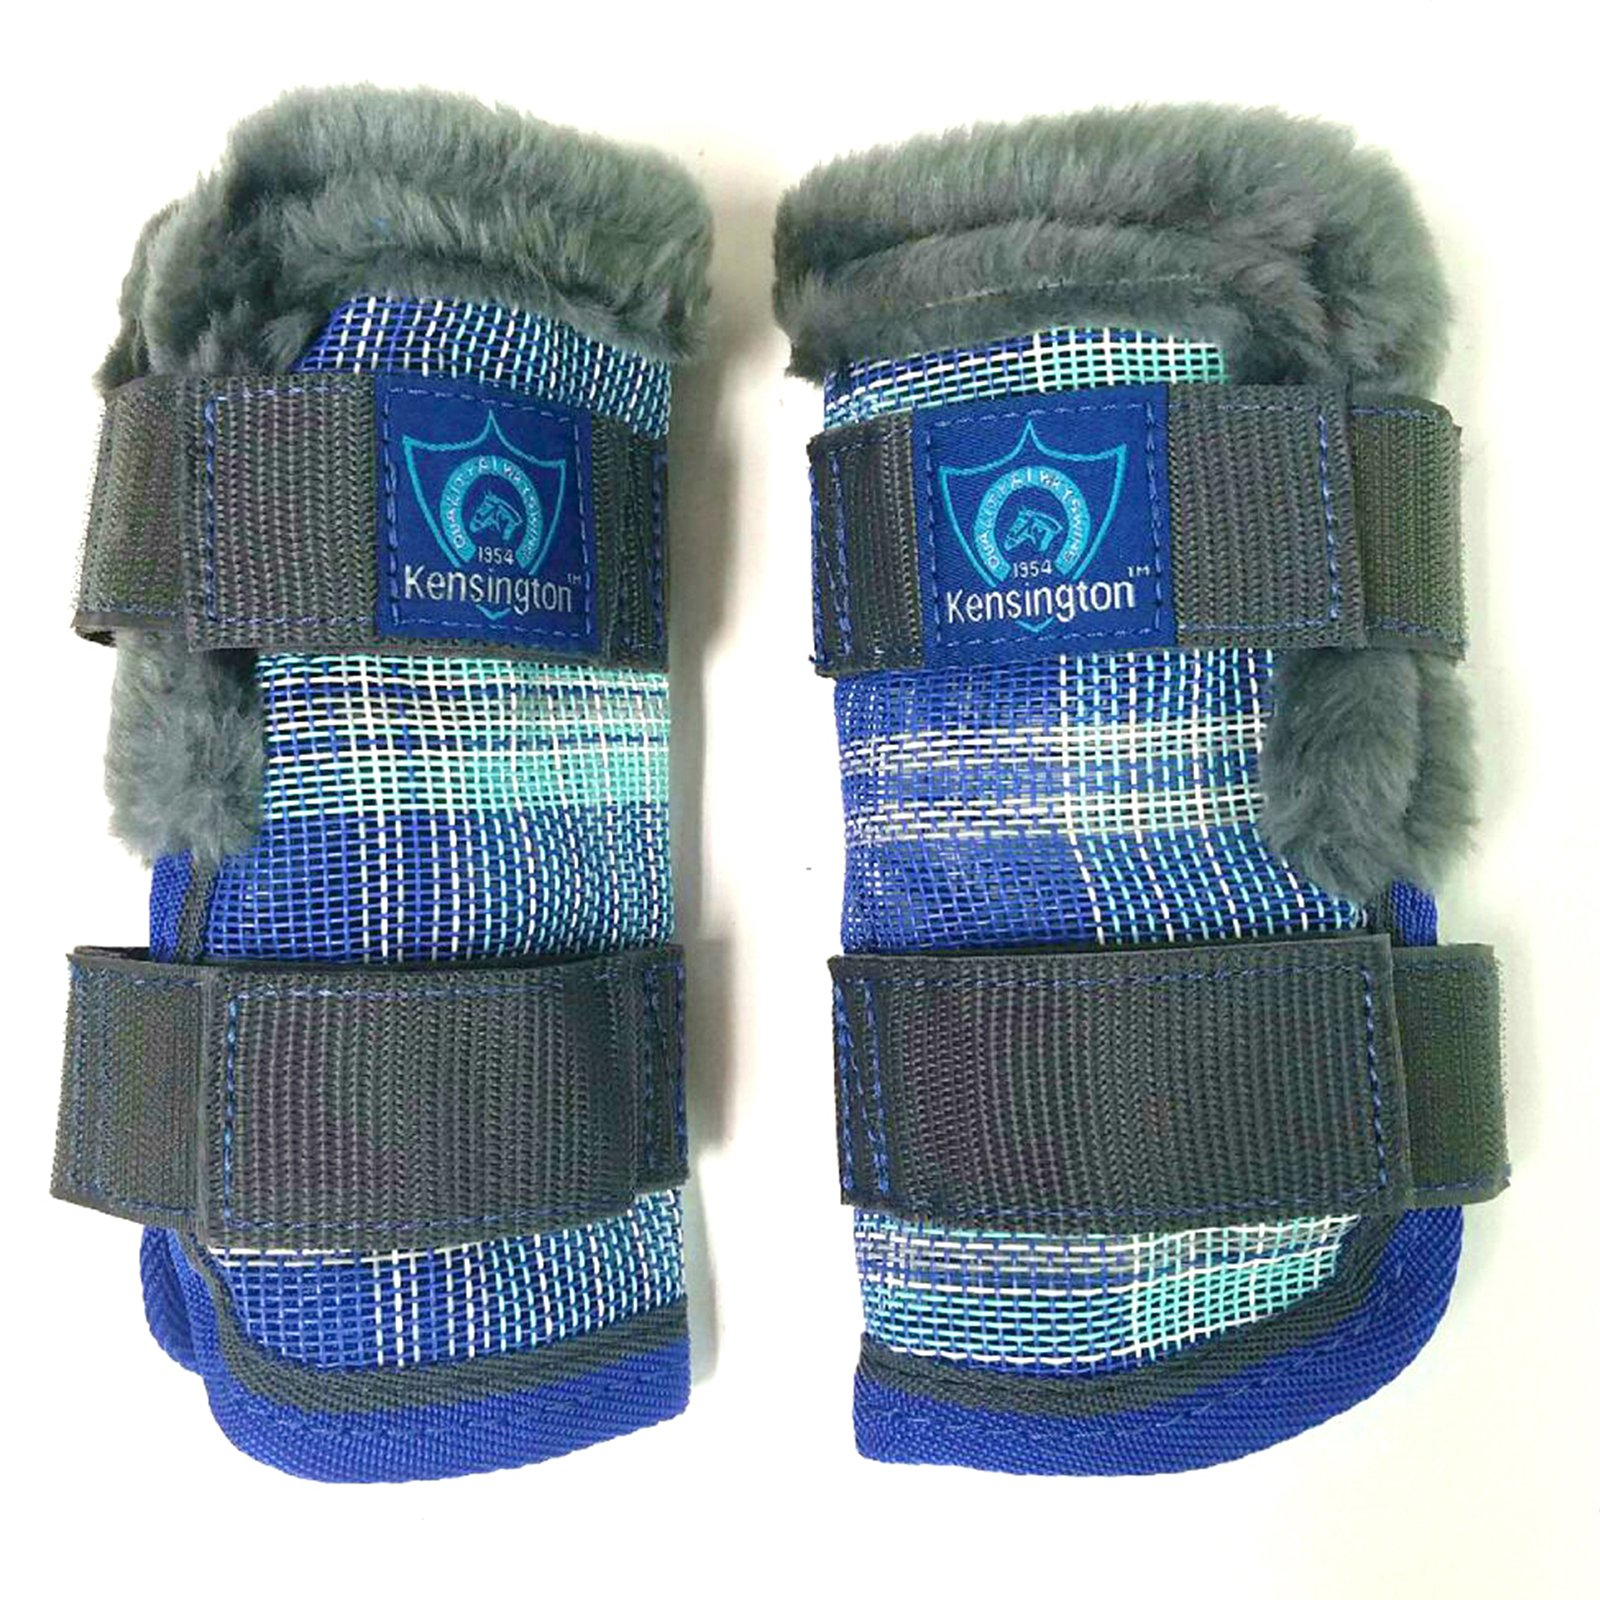 Kensington Protective Products Mini Fly Boots - Set of 4